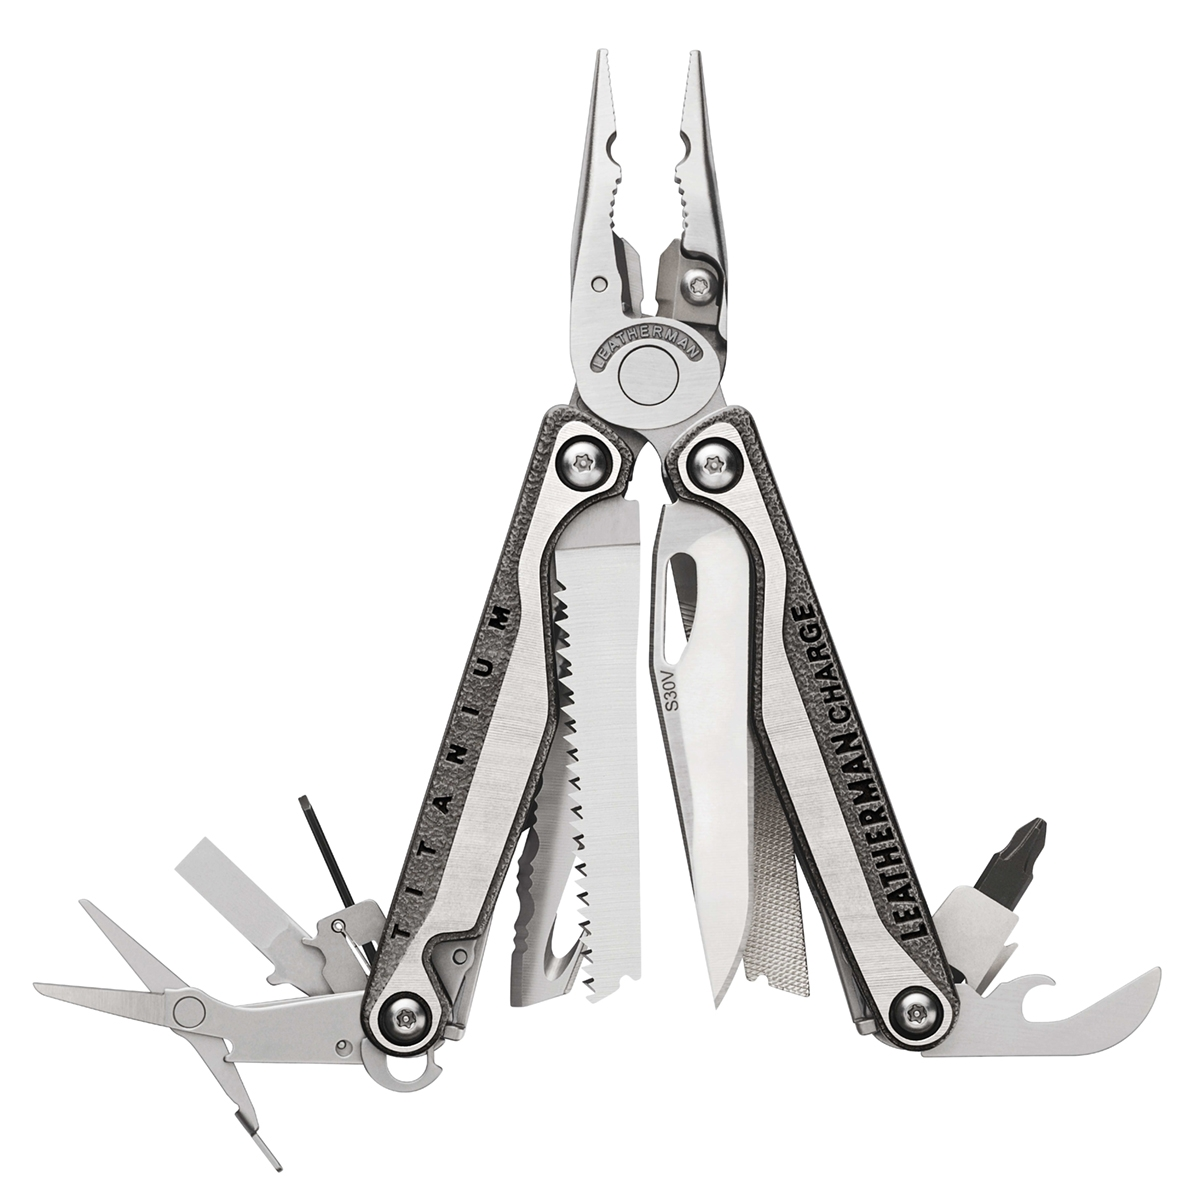 Leatherman Charge TTi+